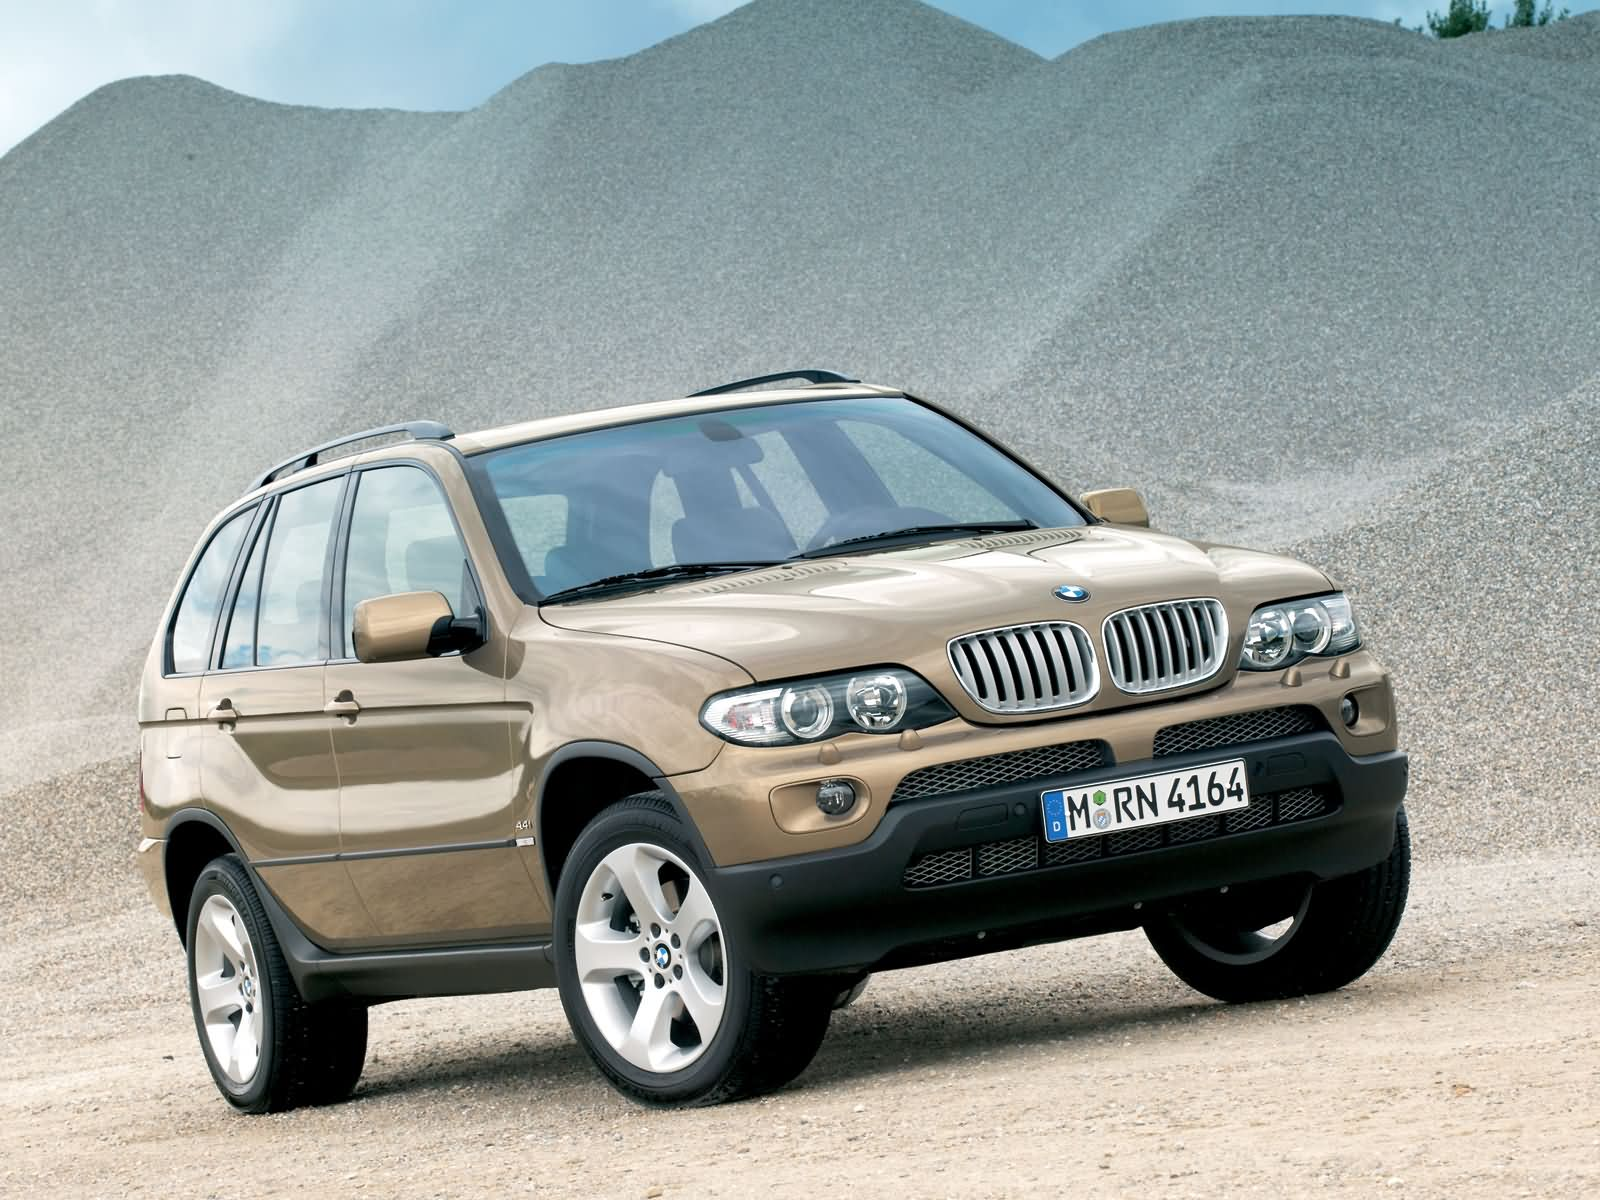 BMW X5 picture # 2553   BMW photo gallery   CarsBase.com